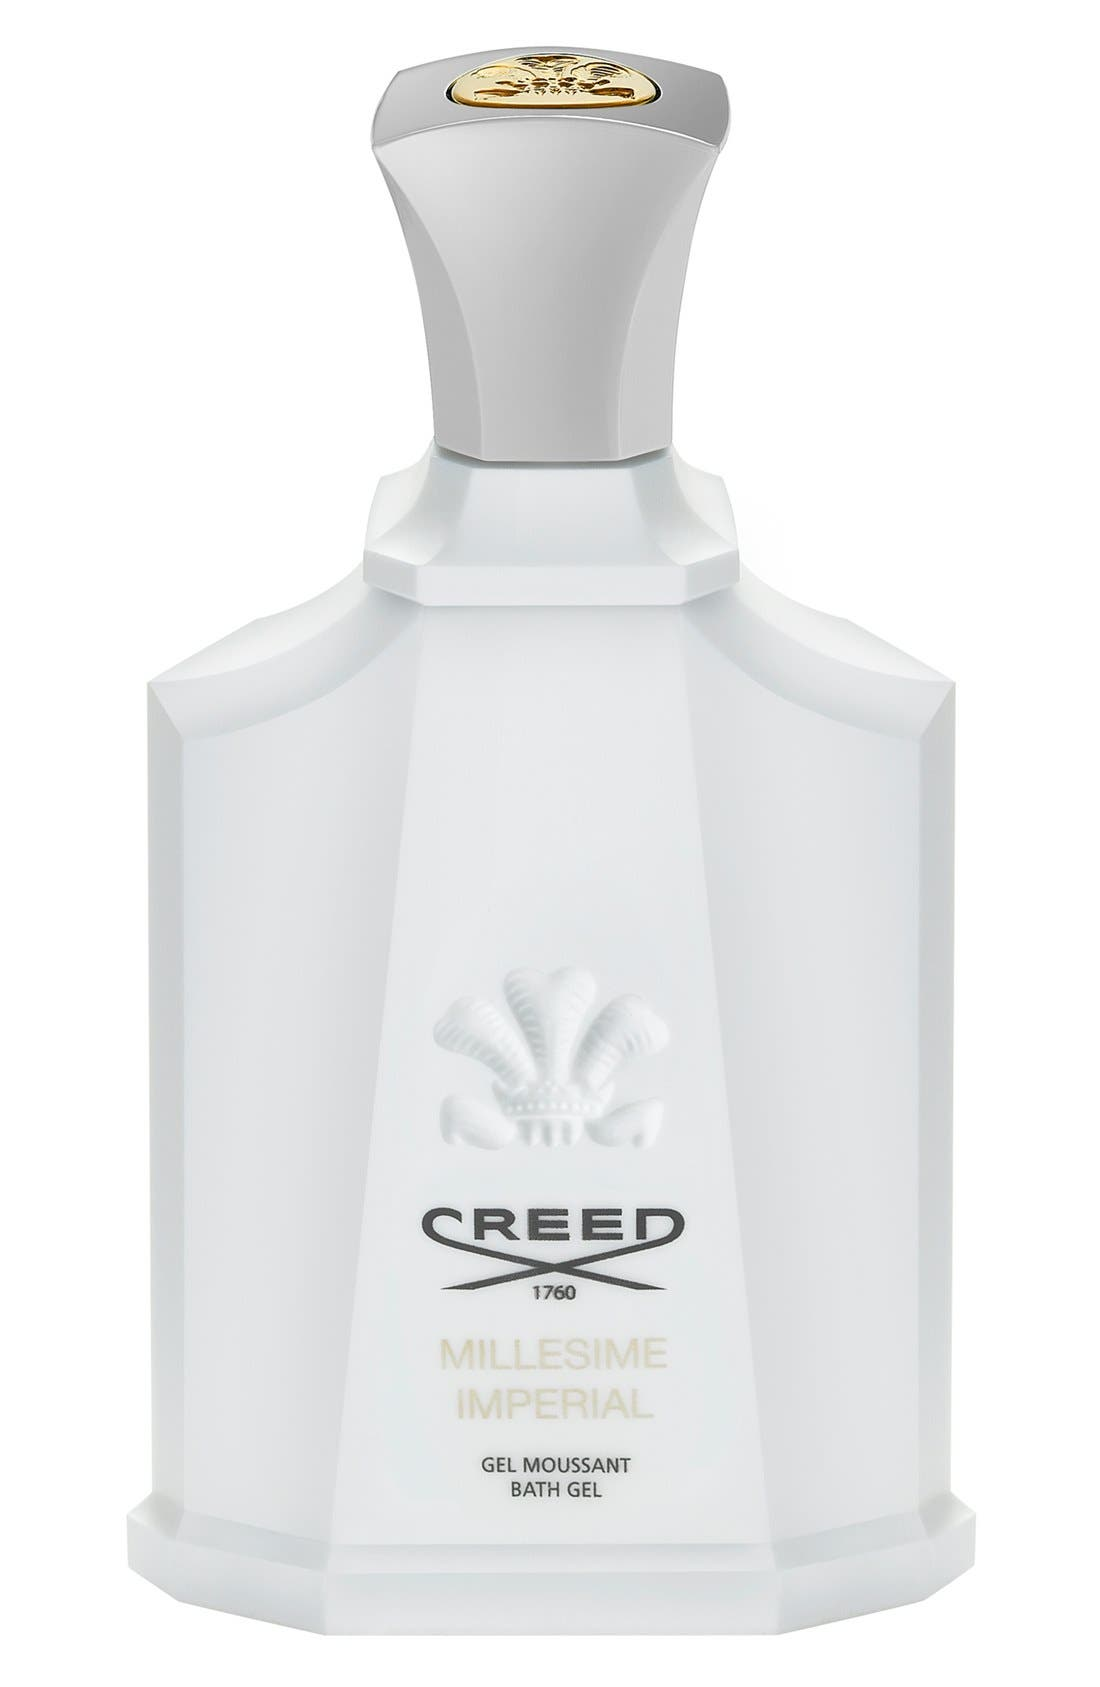 Creed 'Millesime Imperial' Hair & Body Wash